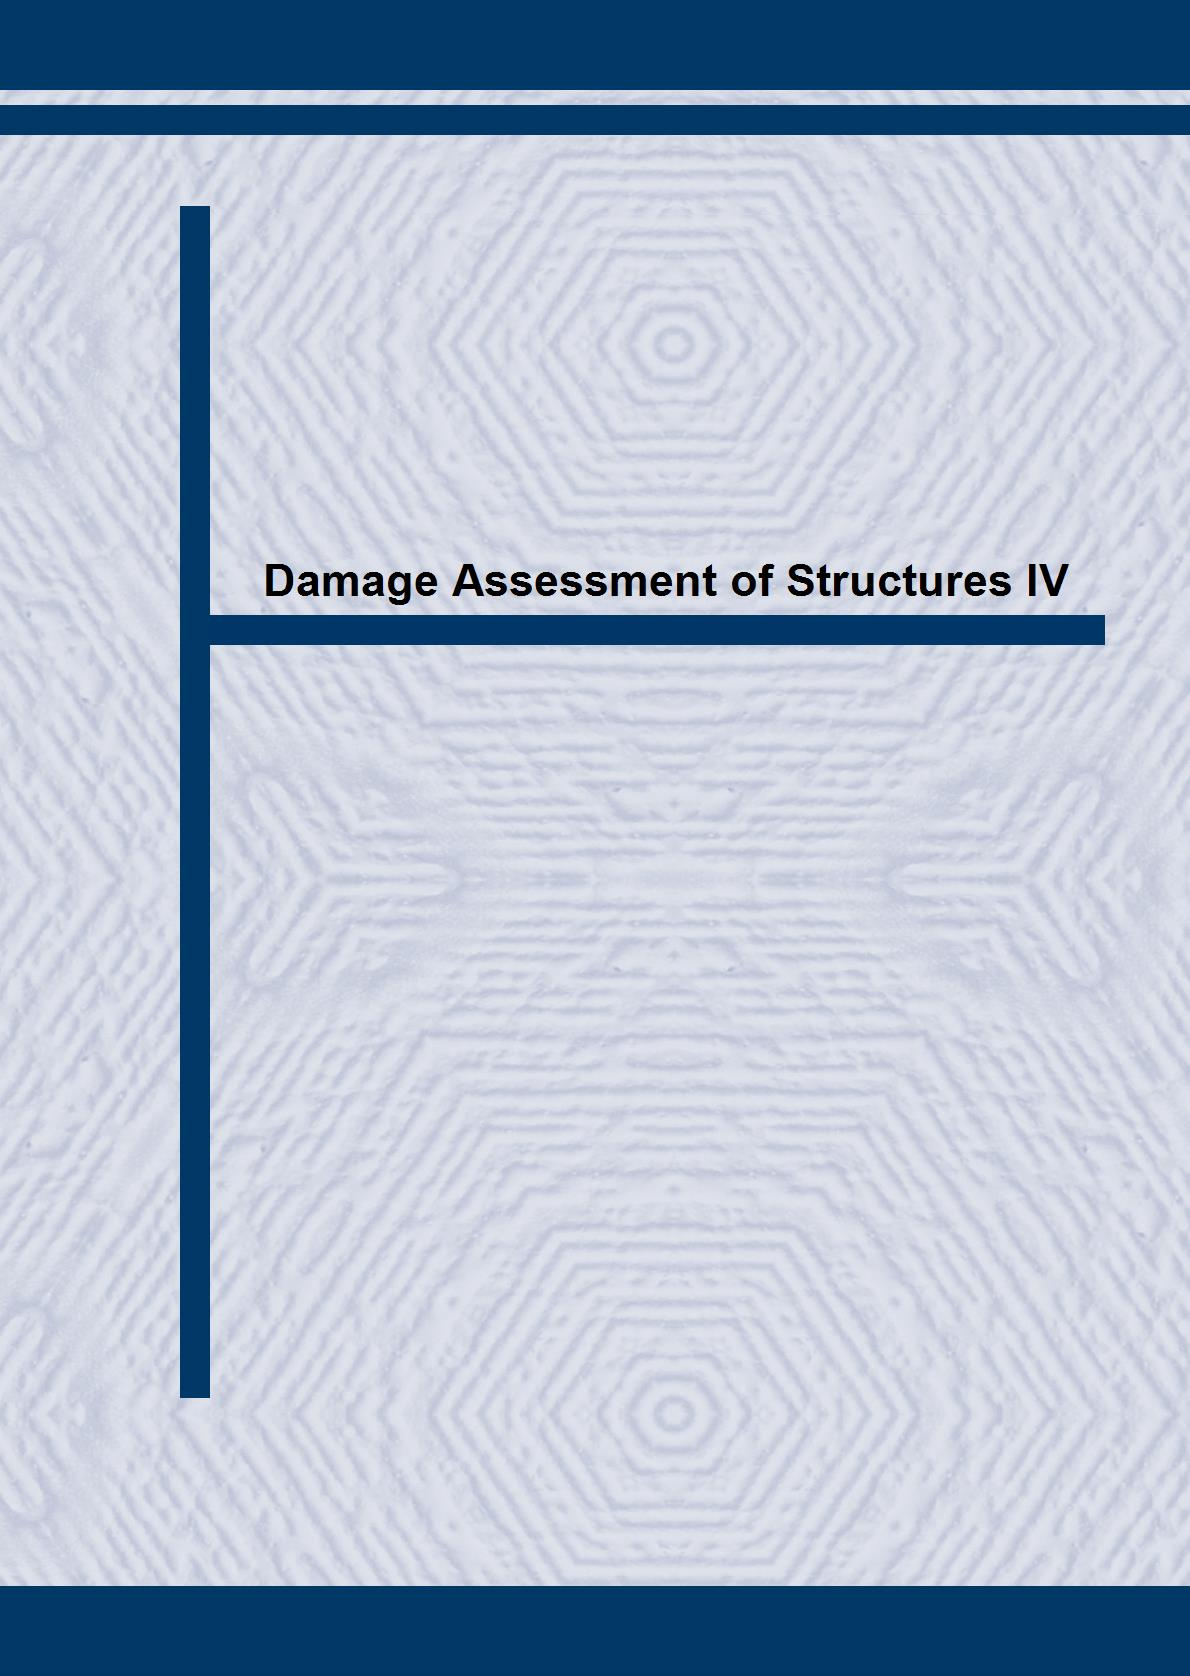 Damage Assessment of Structures IV